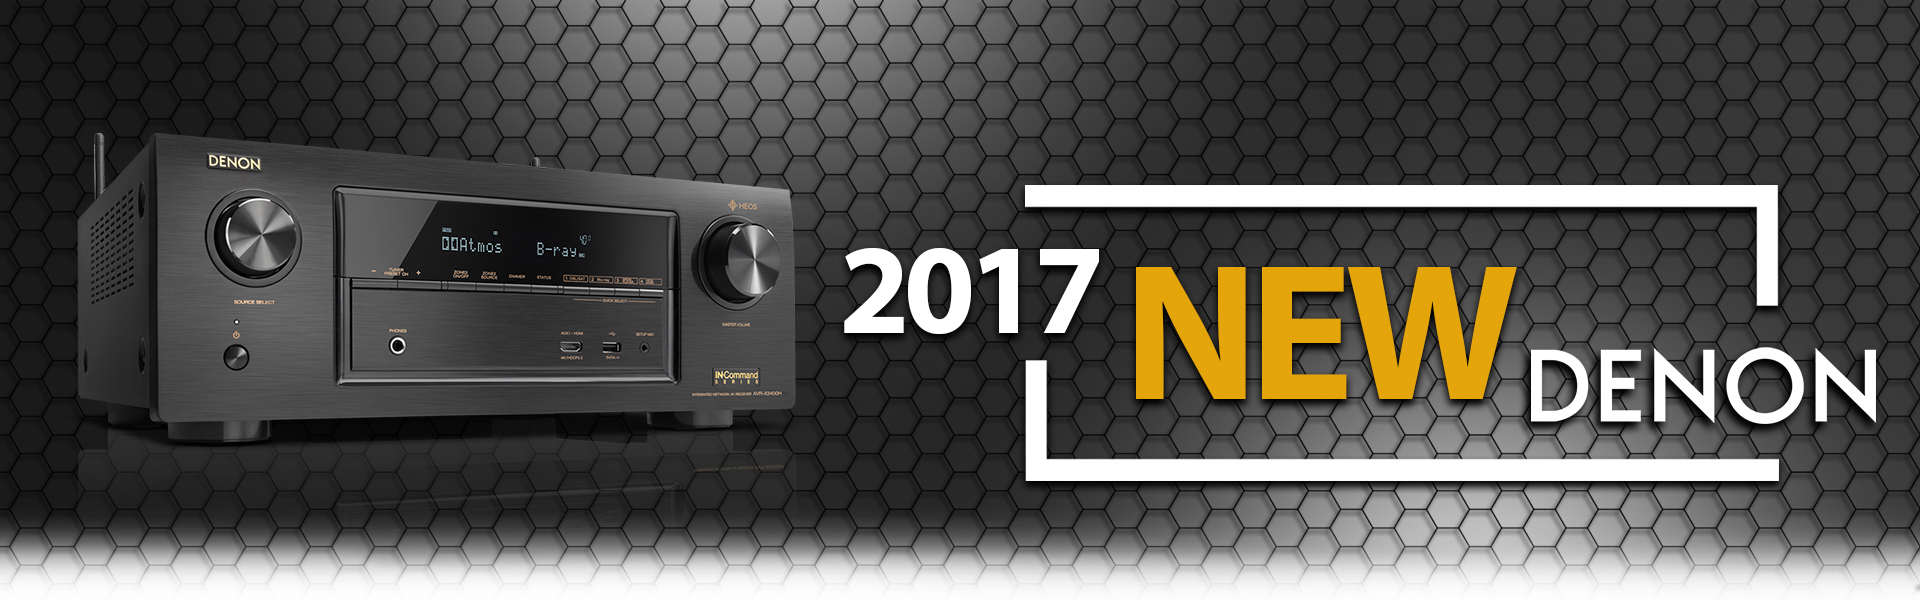 Denon Receivers 2017